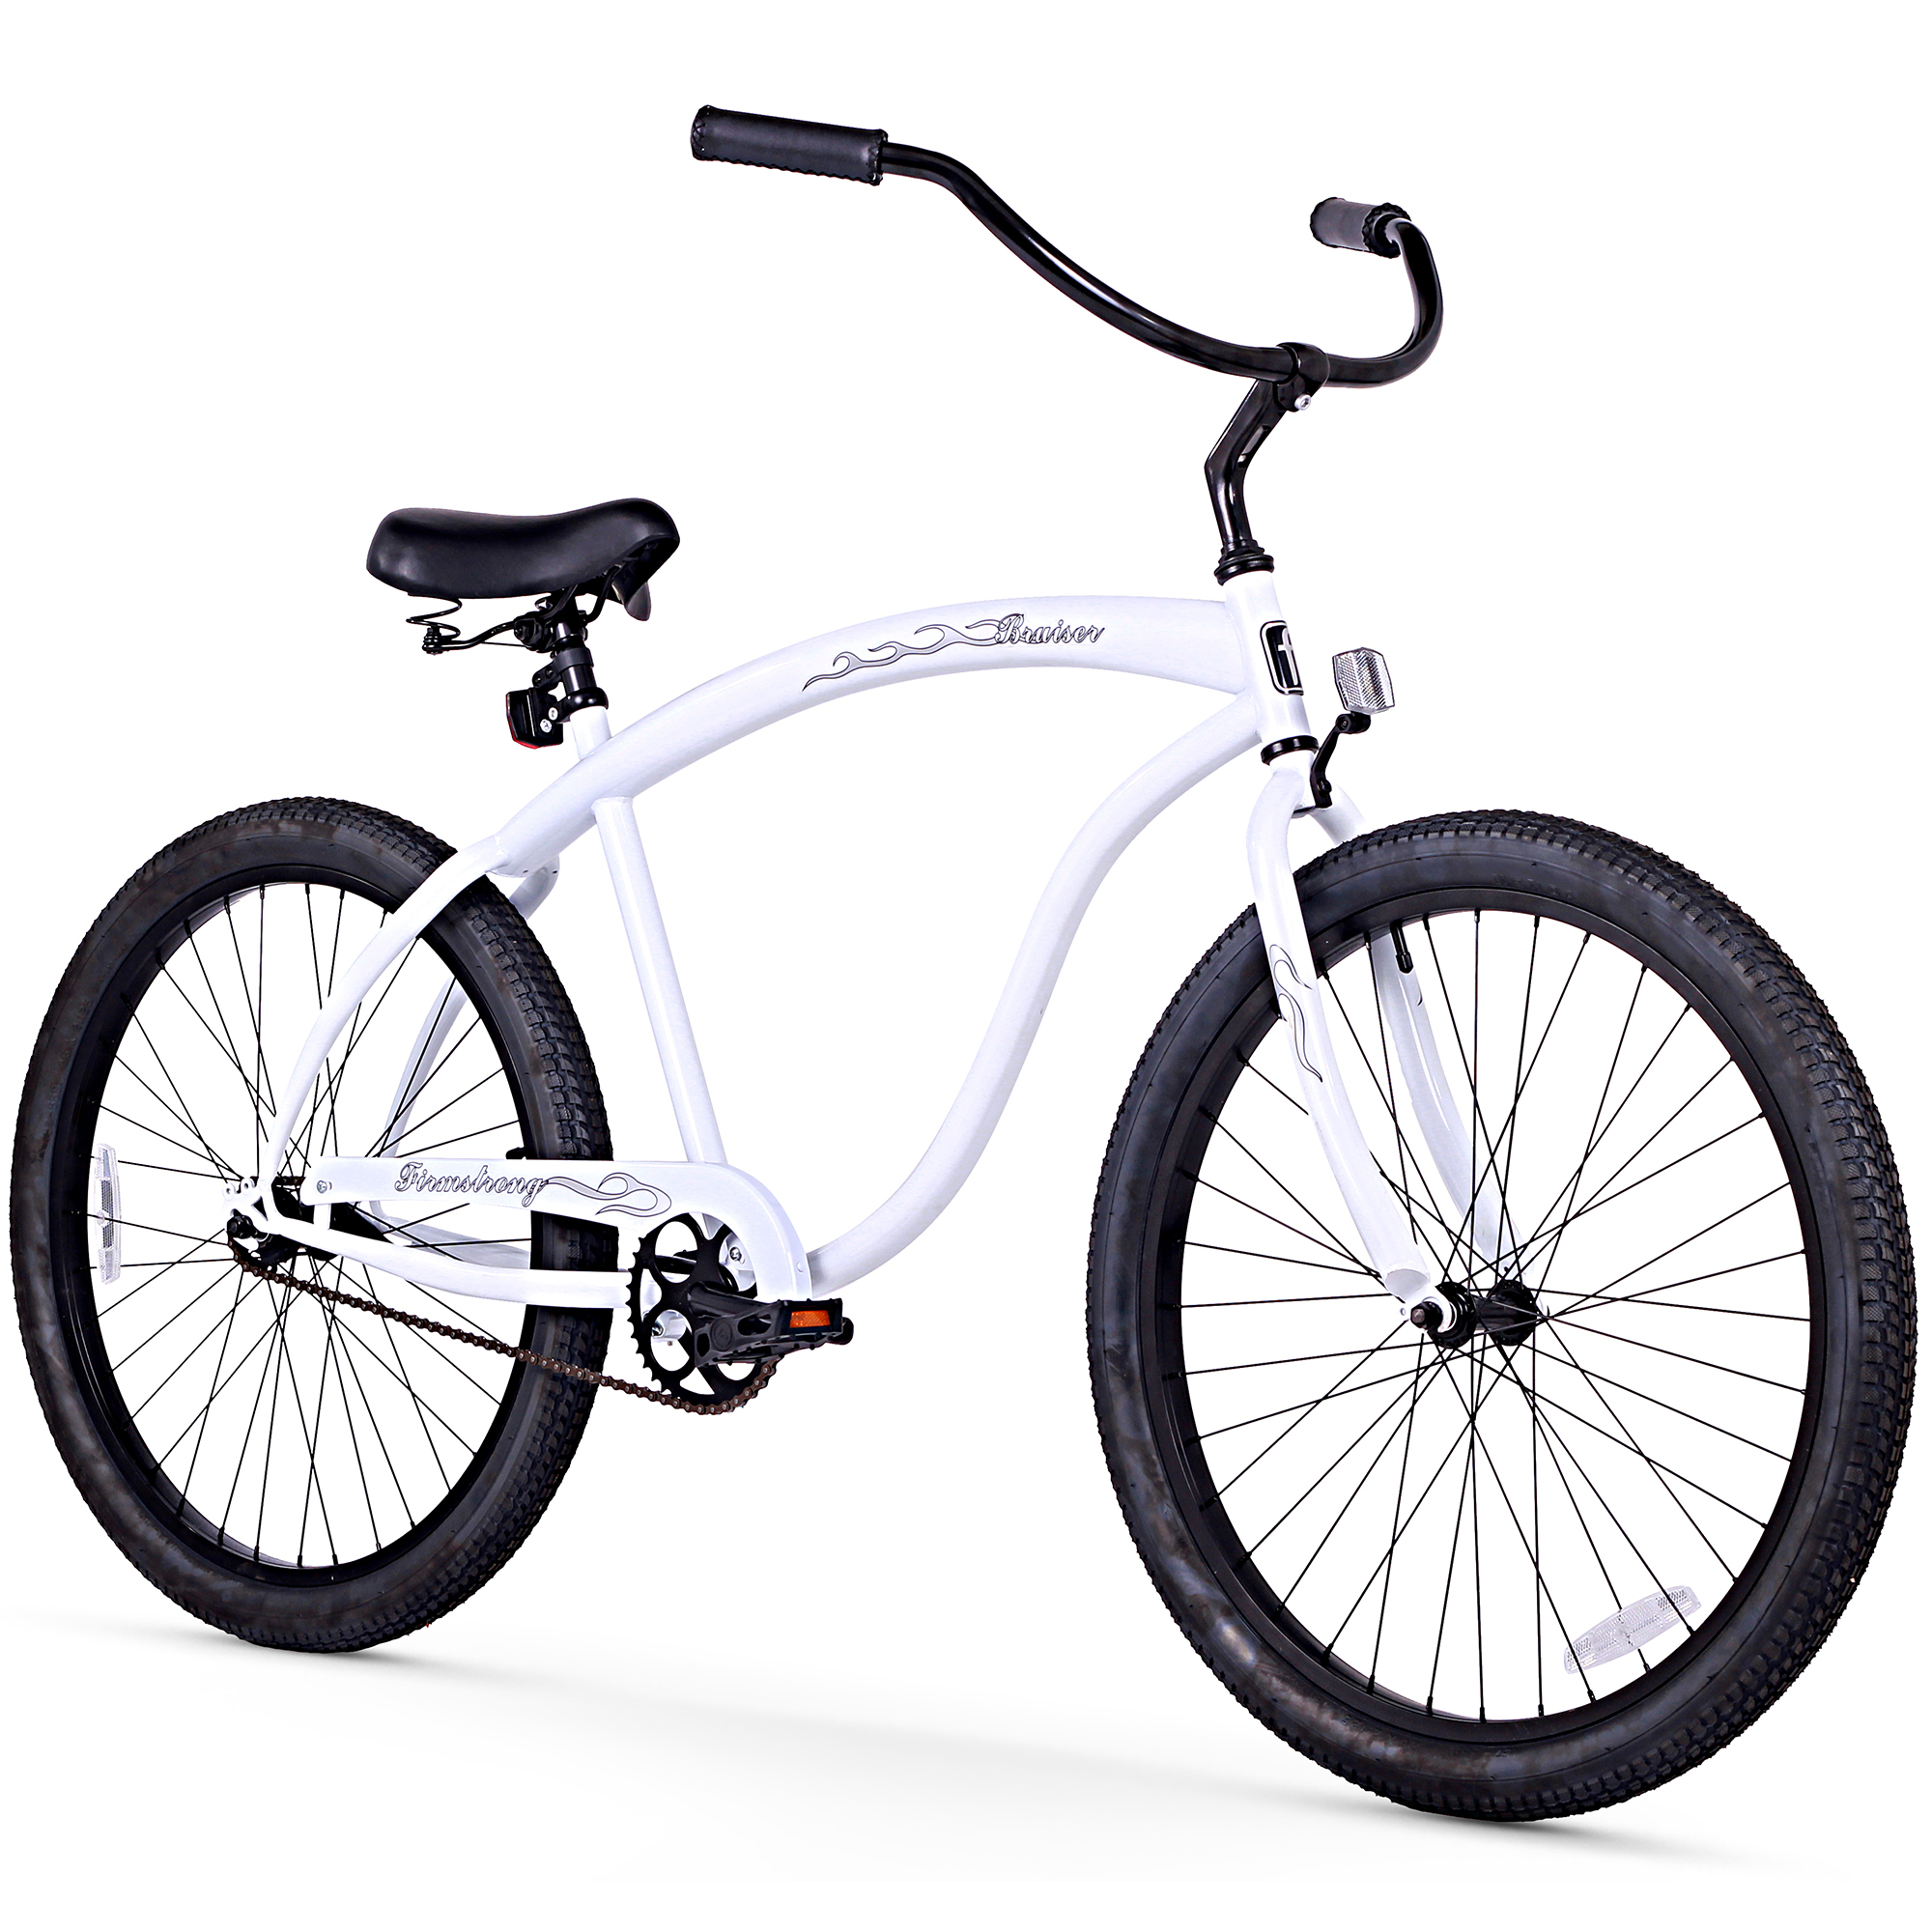 silver beach black single men Firmstrong urban man alloy single speed beach cruiser bicycle, 26-inch,  matte black  all silver shown and silver with black fork and chain guard  delivered.